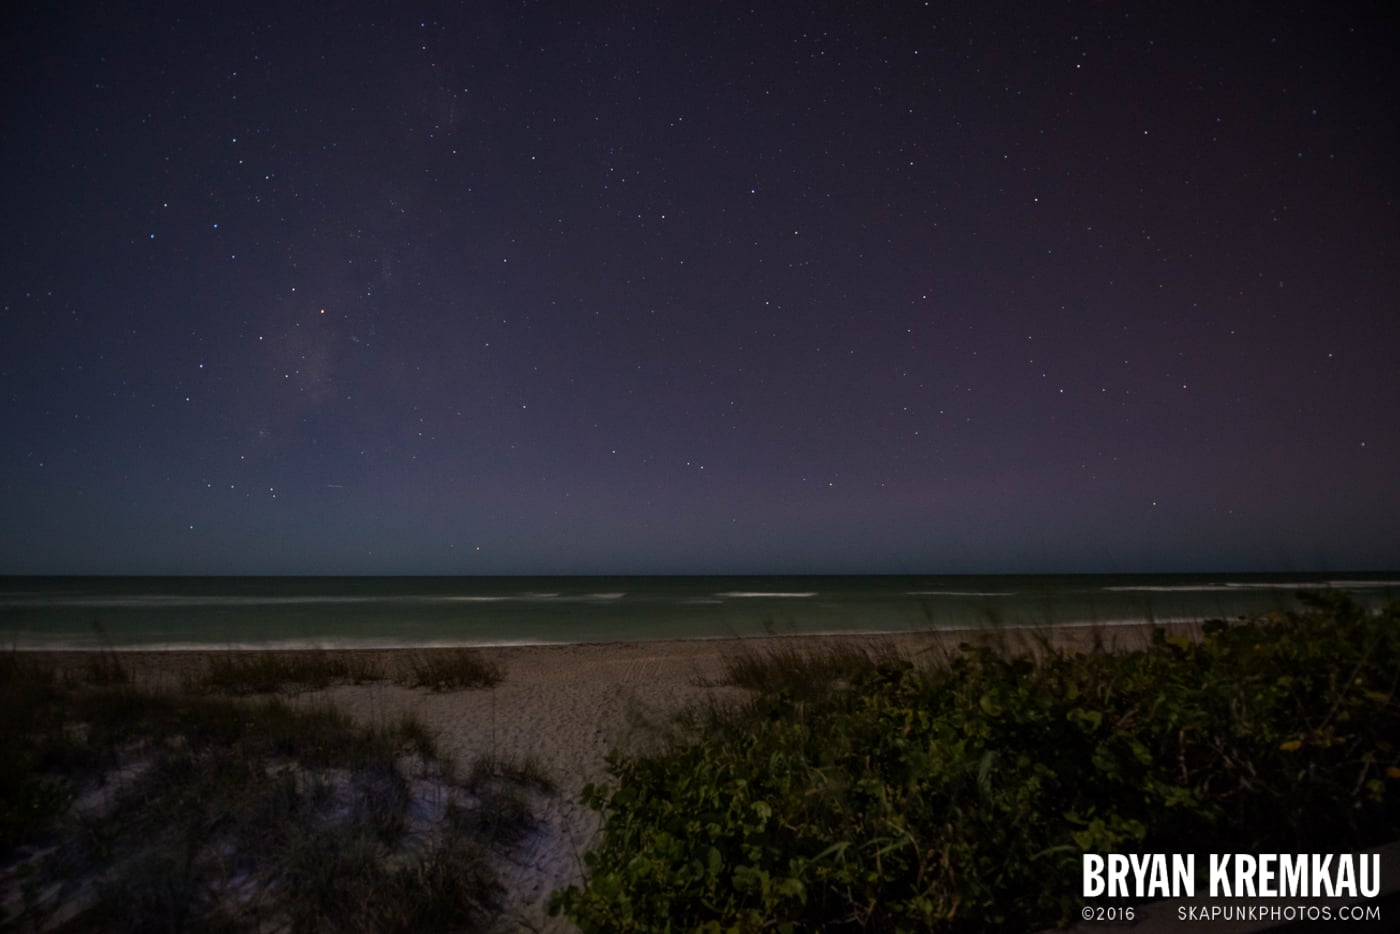 Sunsets, Astrophotography & Birds @ Venice, Florida - 10.25.14 - 11.5.14 (75)